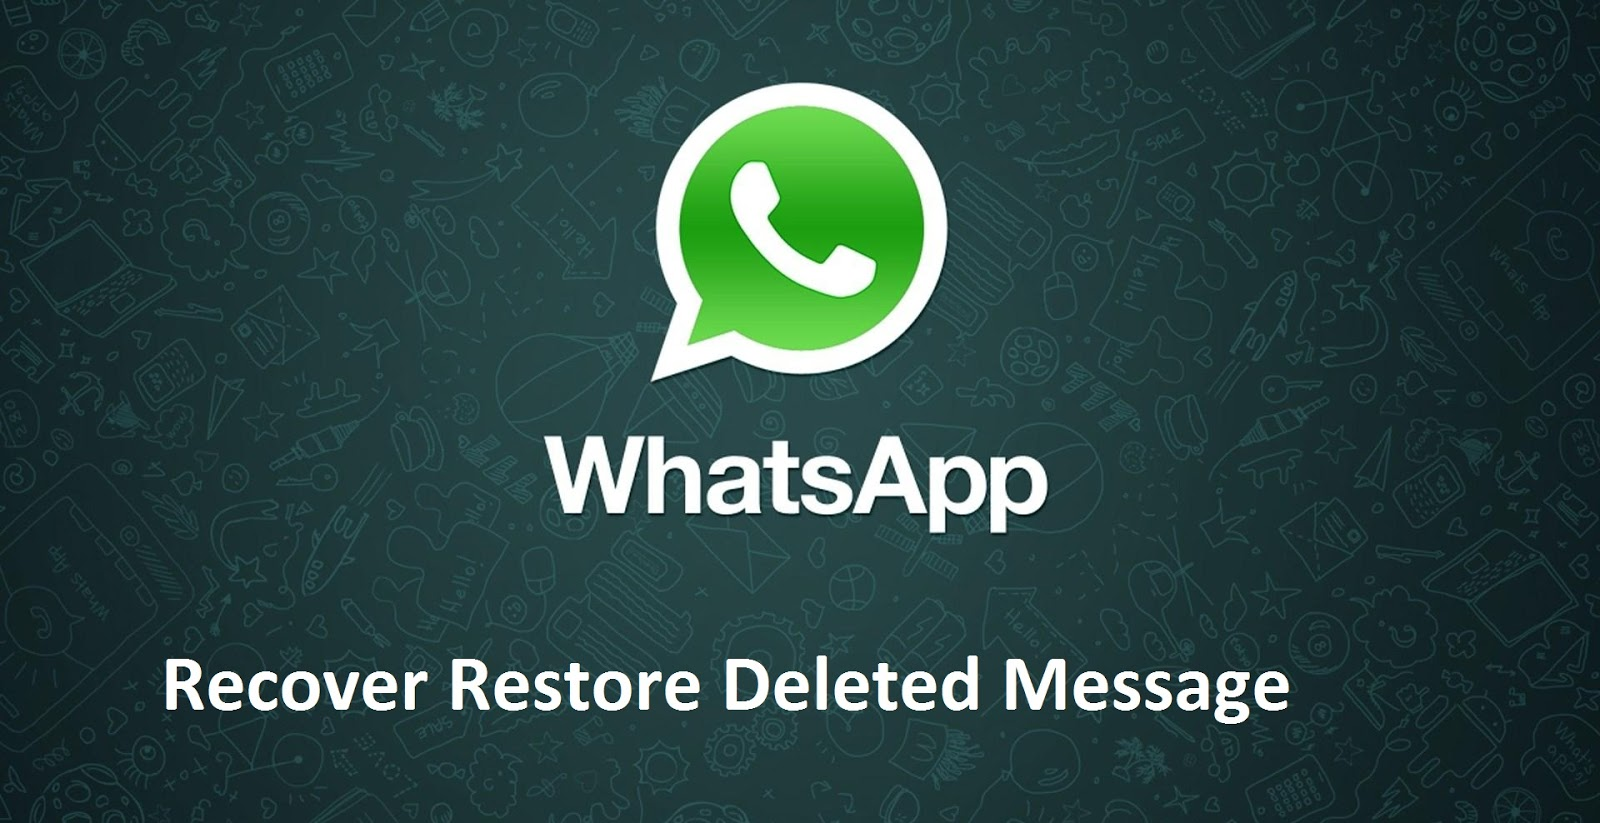 GET WHATSAPP DELETED MESSAGE BACK